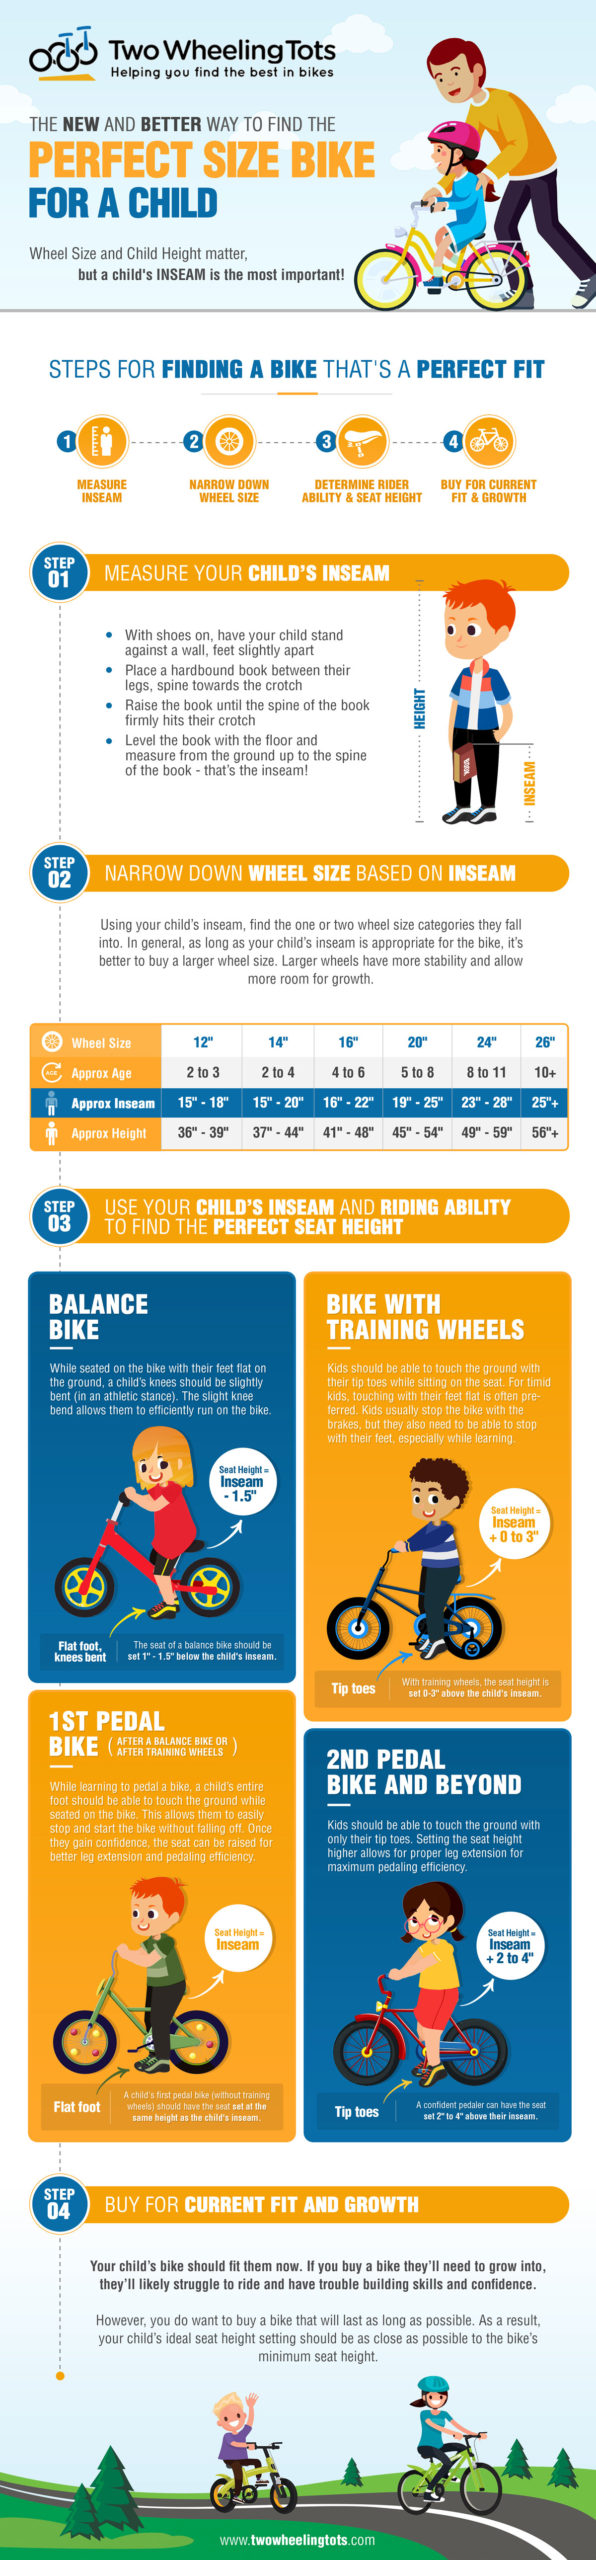 The New And Better Way To Find The Perfect Size Bike For A Child